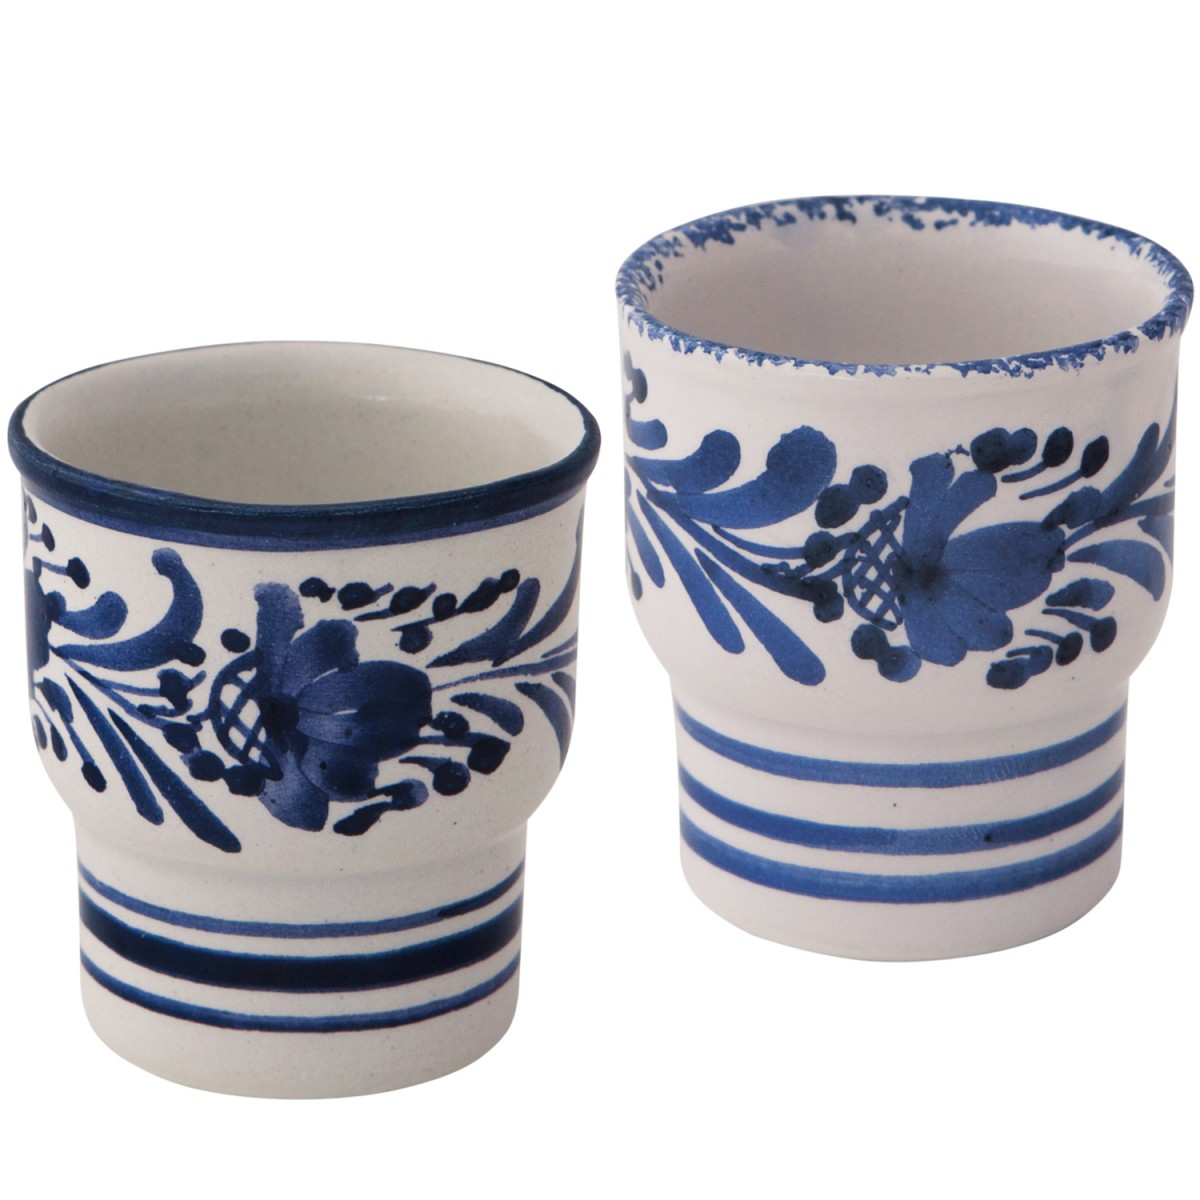 Skyriana_Ceramic_Hand_Painted_Egg_Cups-1